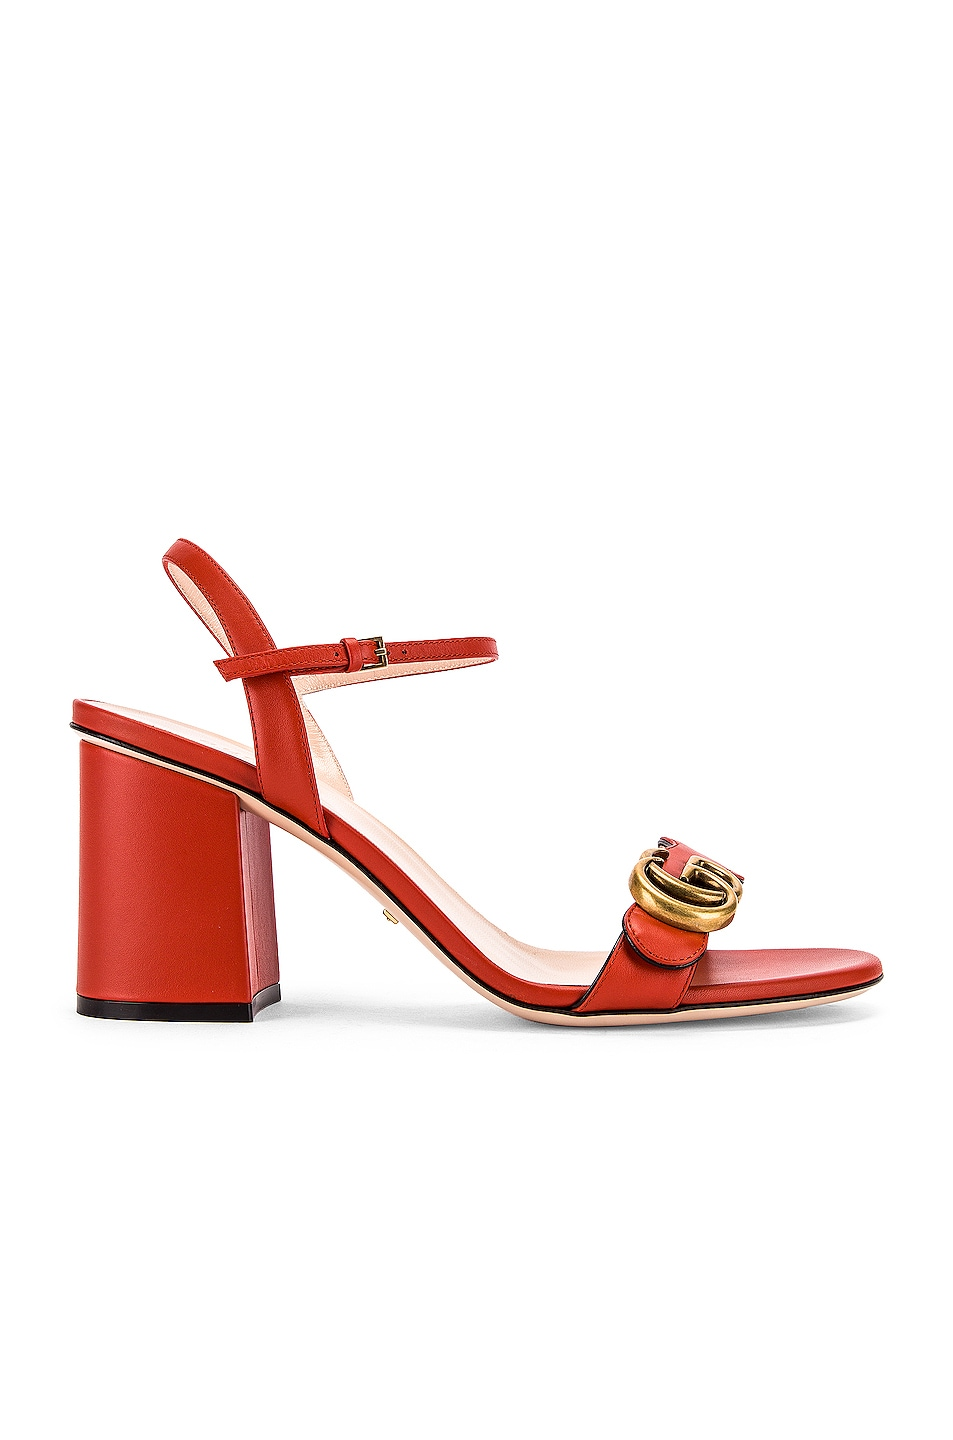 Image 2 of Gucci Marmont Sandals in Bright Pumpkin